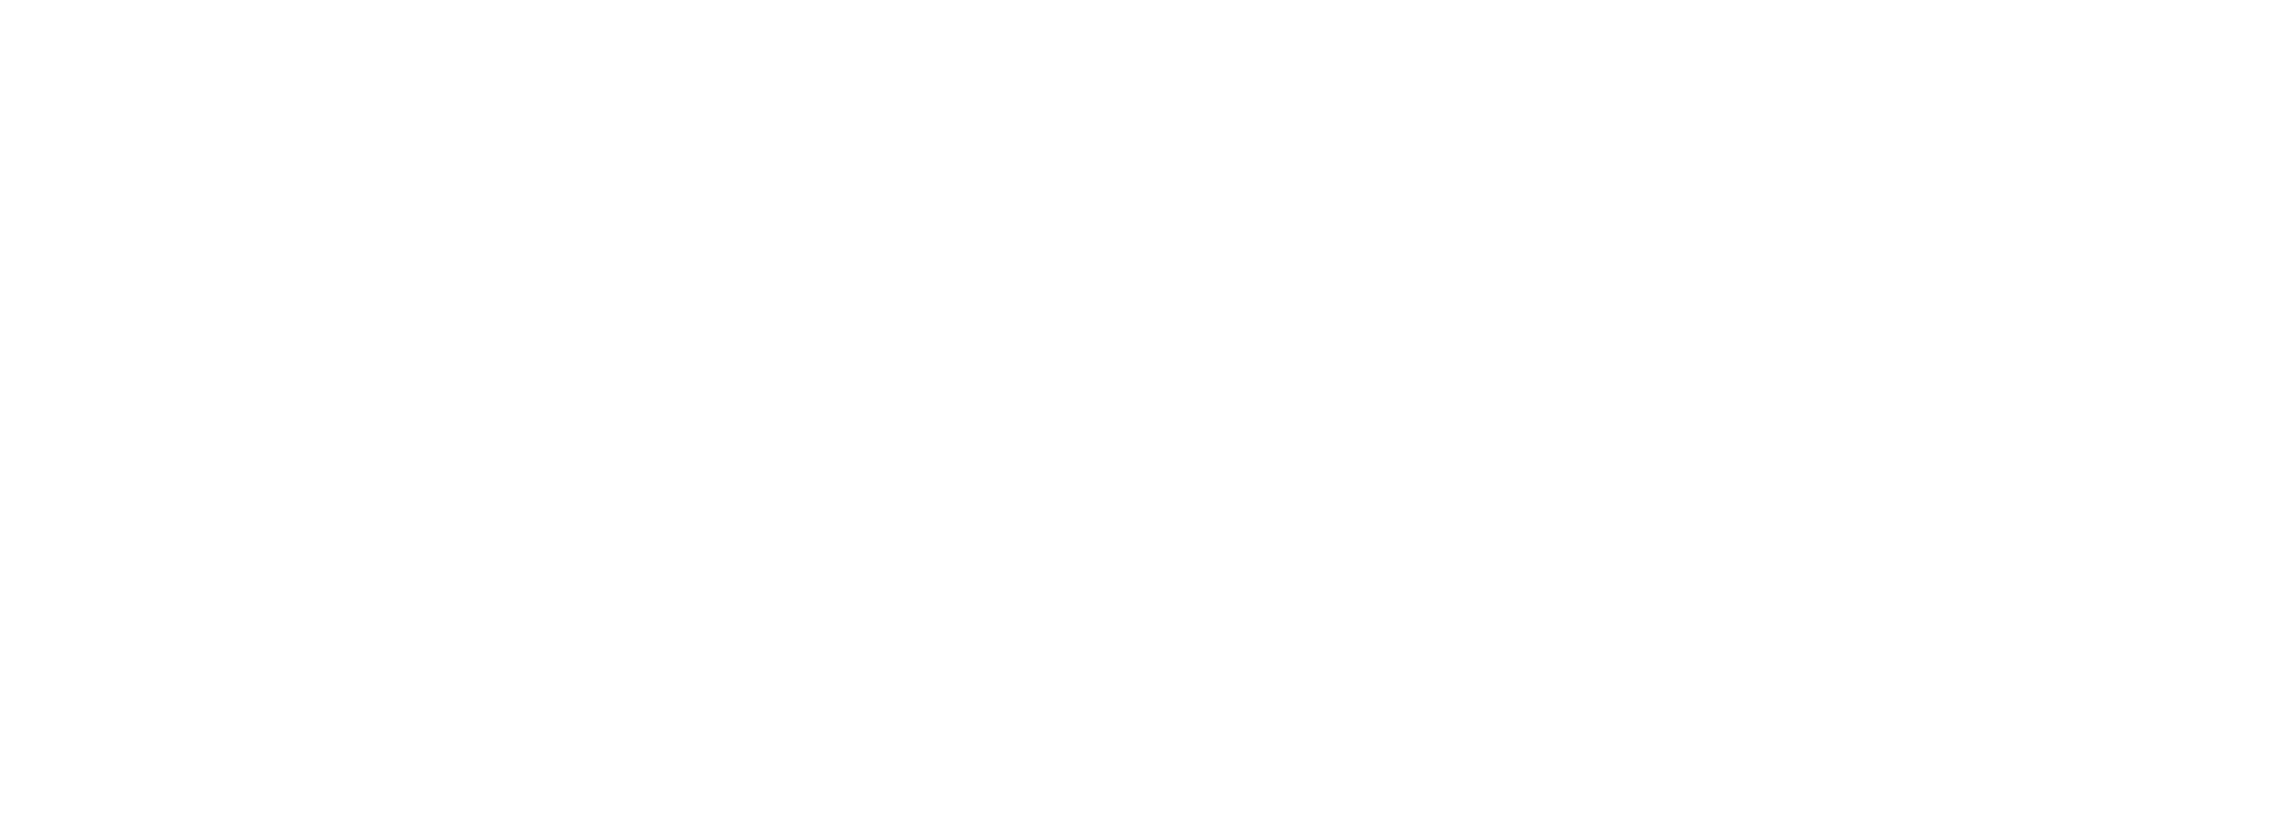 SIGMA 2020 Annual Conference Logo-rev